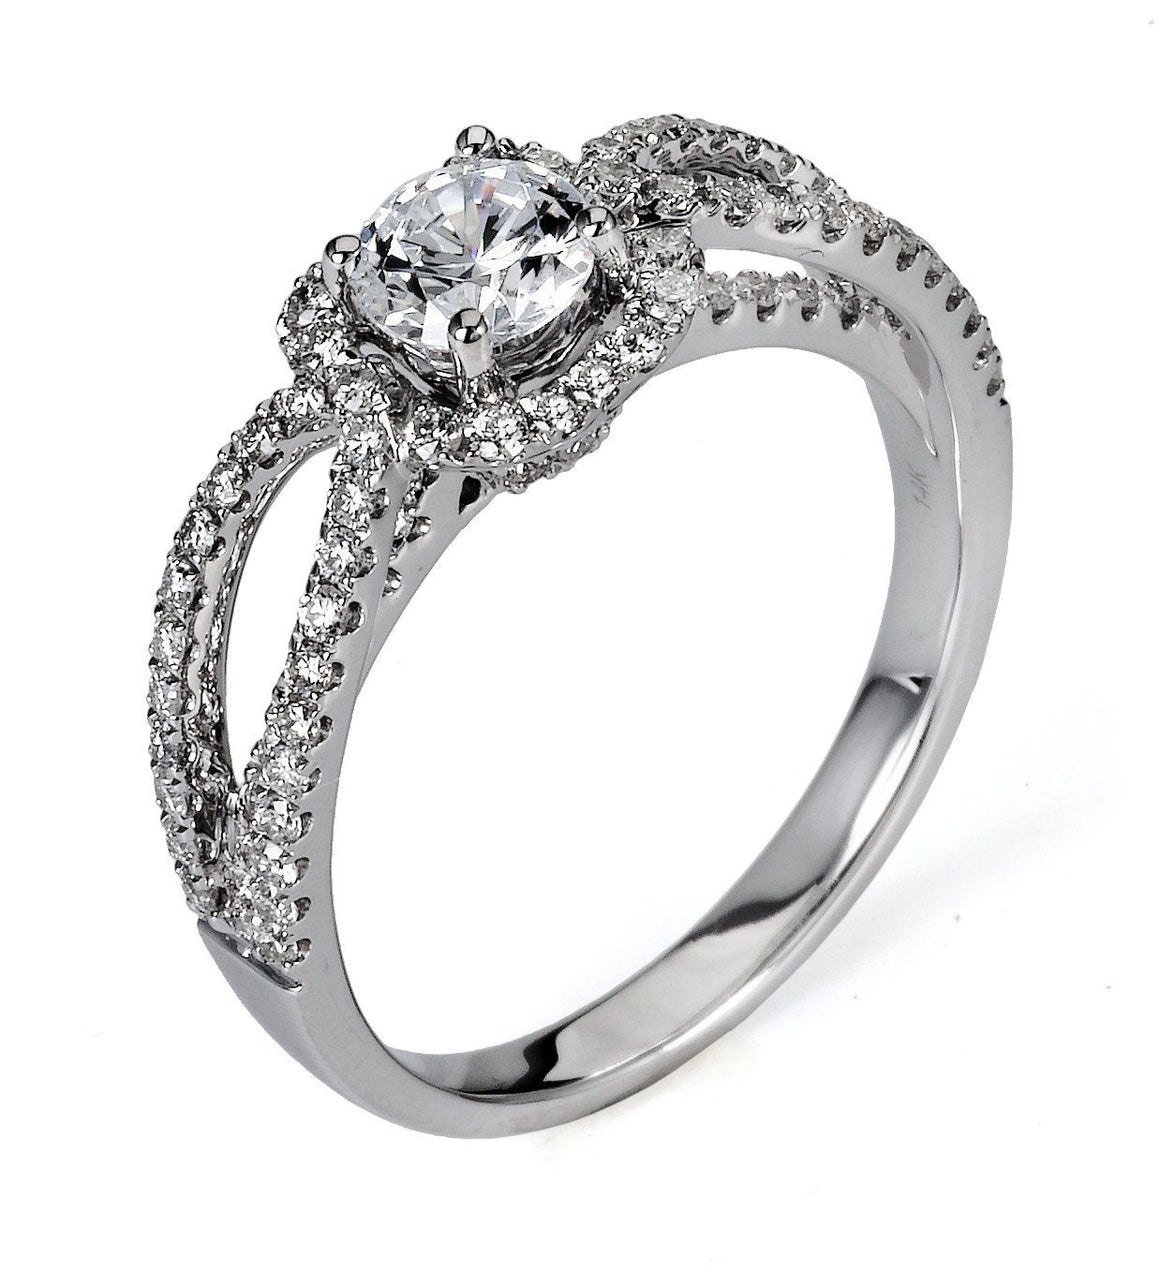 Supreme - SJU921R, Engagement Ring, Supreme Jewelry - Birmingham Jewelry